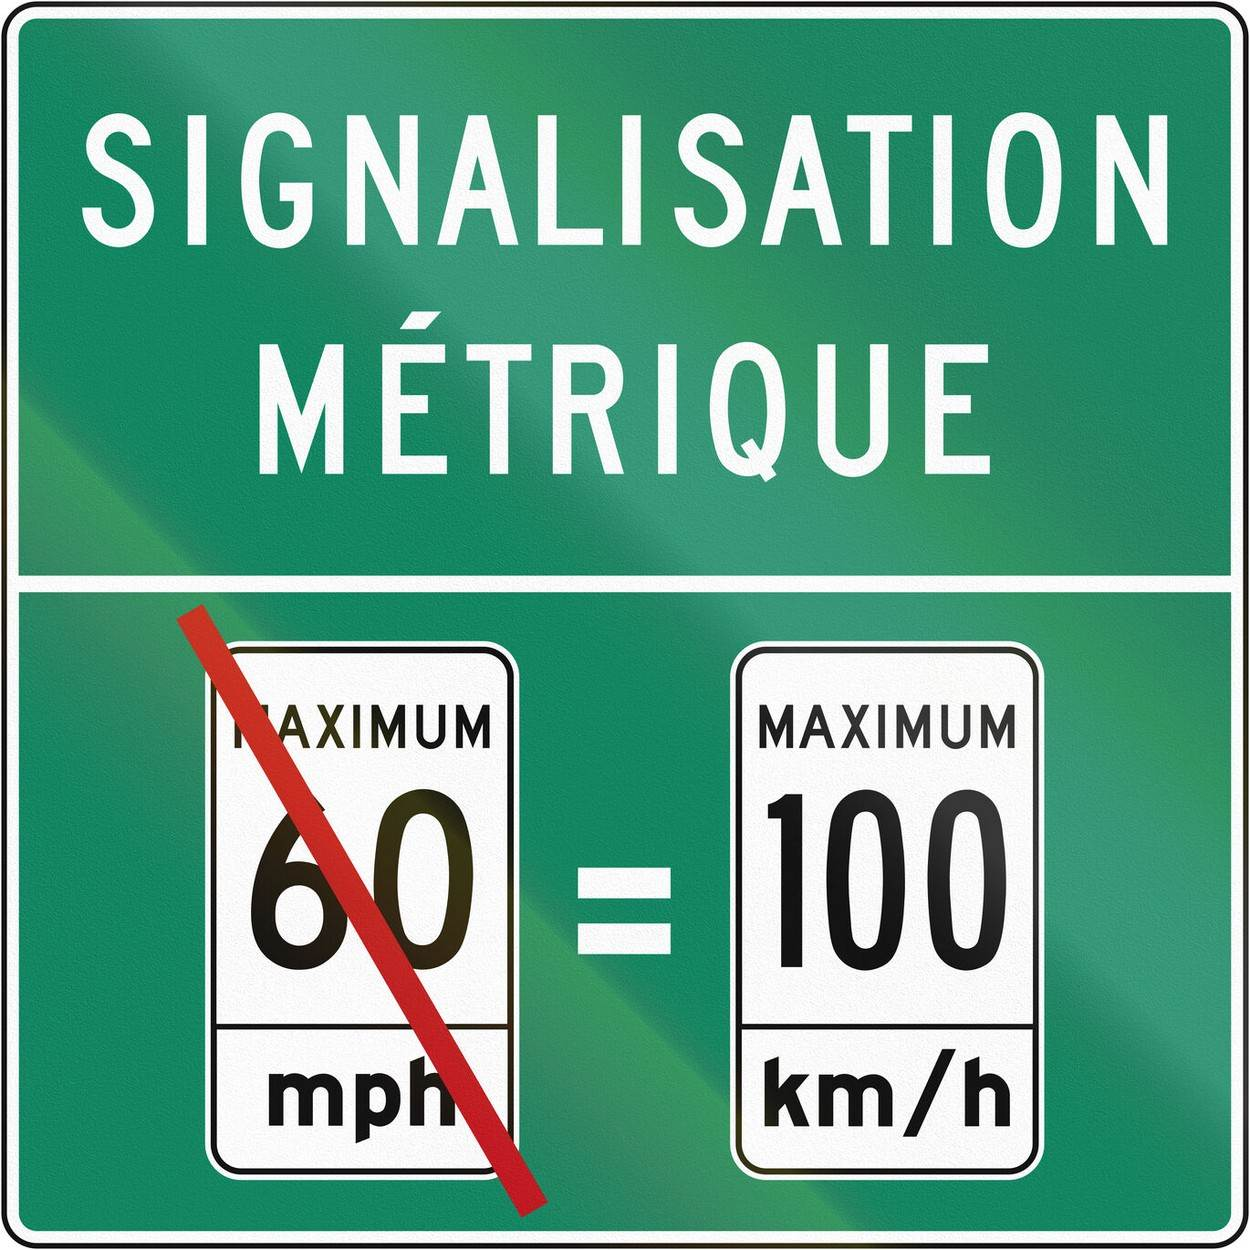 canada;color image;convertion;french canada;french language;french text;french word;graphic;green;guide sign;imperial system;information;information sign;isolated on white;kilometers;kilometers per hour;kmh;maximum;metric system;mile;miles;mph;mutcd;no people;north america;number 100;number 60;quadratic;quebec;reflection;road sign;sign;signage;speed;speed limit;square;symbol;text;textured;traffic;turquoise;unit of measurement;white